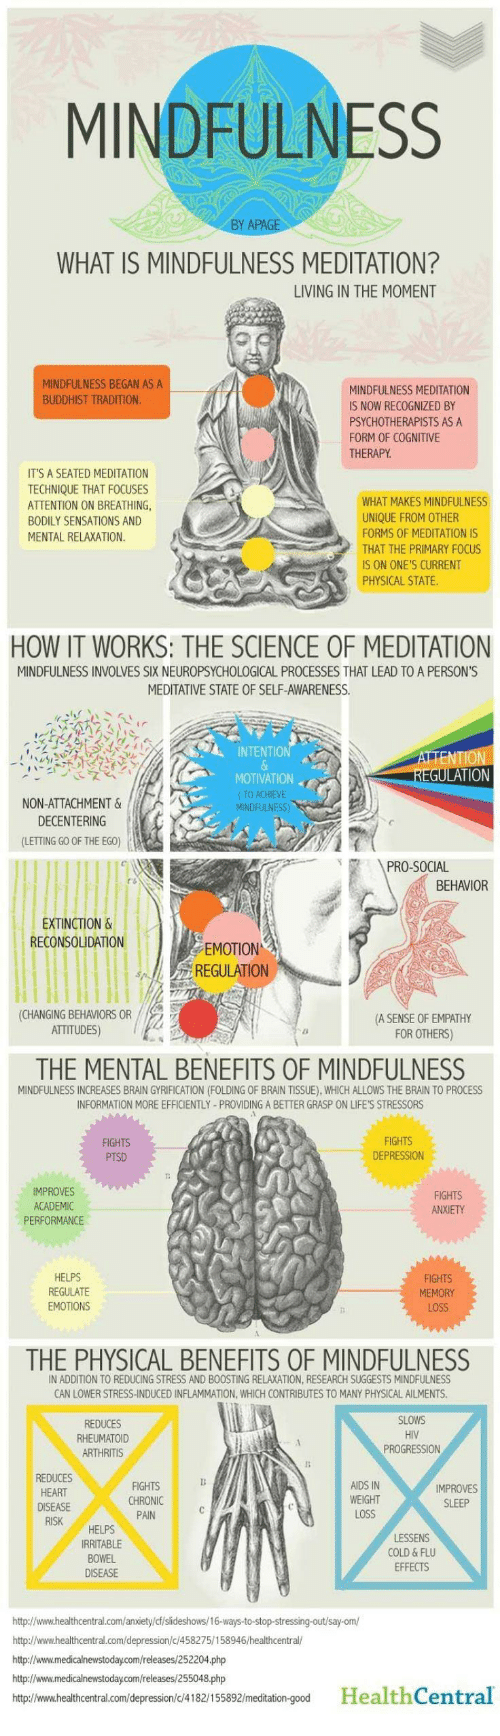 Meditative: MINDFULNESS  WHAT IS MINDFULNESS MEDITATION?  LIVING IN THE MOMENT  MINDFULNESS BEGAN AS A  BUDDHIST TRADITION  MINDFULNESS MEDITATION  S NOW RECOGNIZED BY  PSYCHOTHERAPISTS AS A  FORM OF COGNITIVE  THERAPY  ITS A SEATED MEDITATION  TECHNIQUE THAT FOCUSES  ATTENTION ON BREATHING  BODILY SENSATIONS AND  MENTAL RELAXATION  WHAT MAKES MINDFULNESS  UNIQUE FROM OTHER  FORMS OF MEDITATION IS  THAT THE PRİMARYFOCUS  IS ON ONE'S CURRENT  PHYSICAL STATE  HOW IT WORKS: THE SCIENCE OF MEDITATION  MINDFULNESS INVOLVES SIX NEUROPSYCHOLOGICAL PROCESSES THAT LEAD TO A PERSON'S  MEDITATIVE STATE OF SELF-AWARENESS.  INTENTIO  TION  MOTIVATION  (TO ACHIEVE  NON-ATTACHMENT &  DECENTERING  (LETTING GO OF THE EGO)  PRO-SOCIAL  BEHAVIOR  EXTINCTION &  RECONSOLUDATION  EMOTION  REGULATION  CHANGING BEHAVIORS OR  ATTITUDES)  A SENSE OF EMPATHY  FOR OTHERS)  THE MENTAL BENEFITS OF MINDFULNESS  MINDFULNESS INCREASES BRAIN GYRIFICATION (FOLDING OF BRAIN TISSUE), WHICH ALLOWS THE BRAIN TO PROCESS  INFORMATION MORE EFFICIENTLY-PROVIDING A BETTER GRASP ON LIFE'S STRESSORS  FIGHTS  DEPRESSION  MPROVES  ACADEMIC  PERFORMANCE  FIGHTS  ANXIETY  HELPS  REGULATE  EMOTIONS  FIGHTS  MEMORY  LOSS  THE PHYSICAL BENEFITS OF MINDFULNESS  IN ADDITION TO REDUCING STRESS AND BOOSTING RELAXATION, RESEARCH SUGGESTS MİNDFULNESS  CAN LOWER STRESS-INDUCED INFLAMMATION, WHICH CONTRIBUTES TO MANY PHYSICAL AILMENTS  REDUCES  RHEUMATOID  HIV  PROGRESSION  REDUCES  HEART  FIGHTS  CHRONIC  PAIN  AIDS IN  WEIGHT  LOSS  SLEEP  HELPS  IRRITABLE  BOWEL  DISEASE  COLD & FLU  EFFECTS  http://www.healthcentral.com/anxiety/cfislideshows/16-ways-to-stop-stressing-out/say-om/  http://www.healthcentral.com/depression/c 458275/158946/healthcentral/  http://www.medicalnewstoday.com/releases/252204.php  http://www.medicalnewstoday.com/releases/255048.php  htp//www.healthcentral.com/depression/c/4182/155892/meditation-good HealthCentral